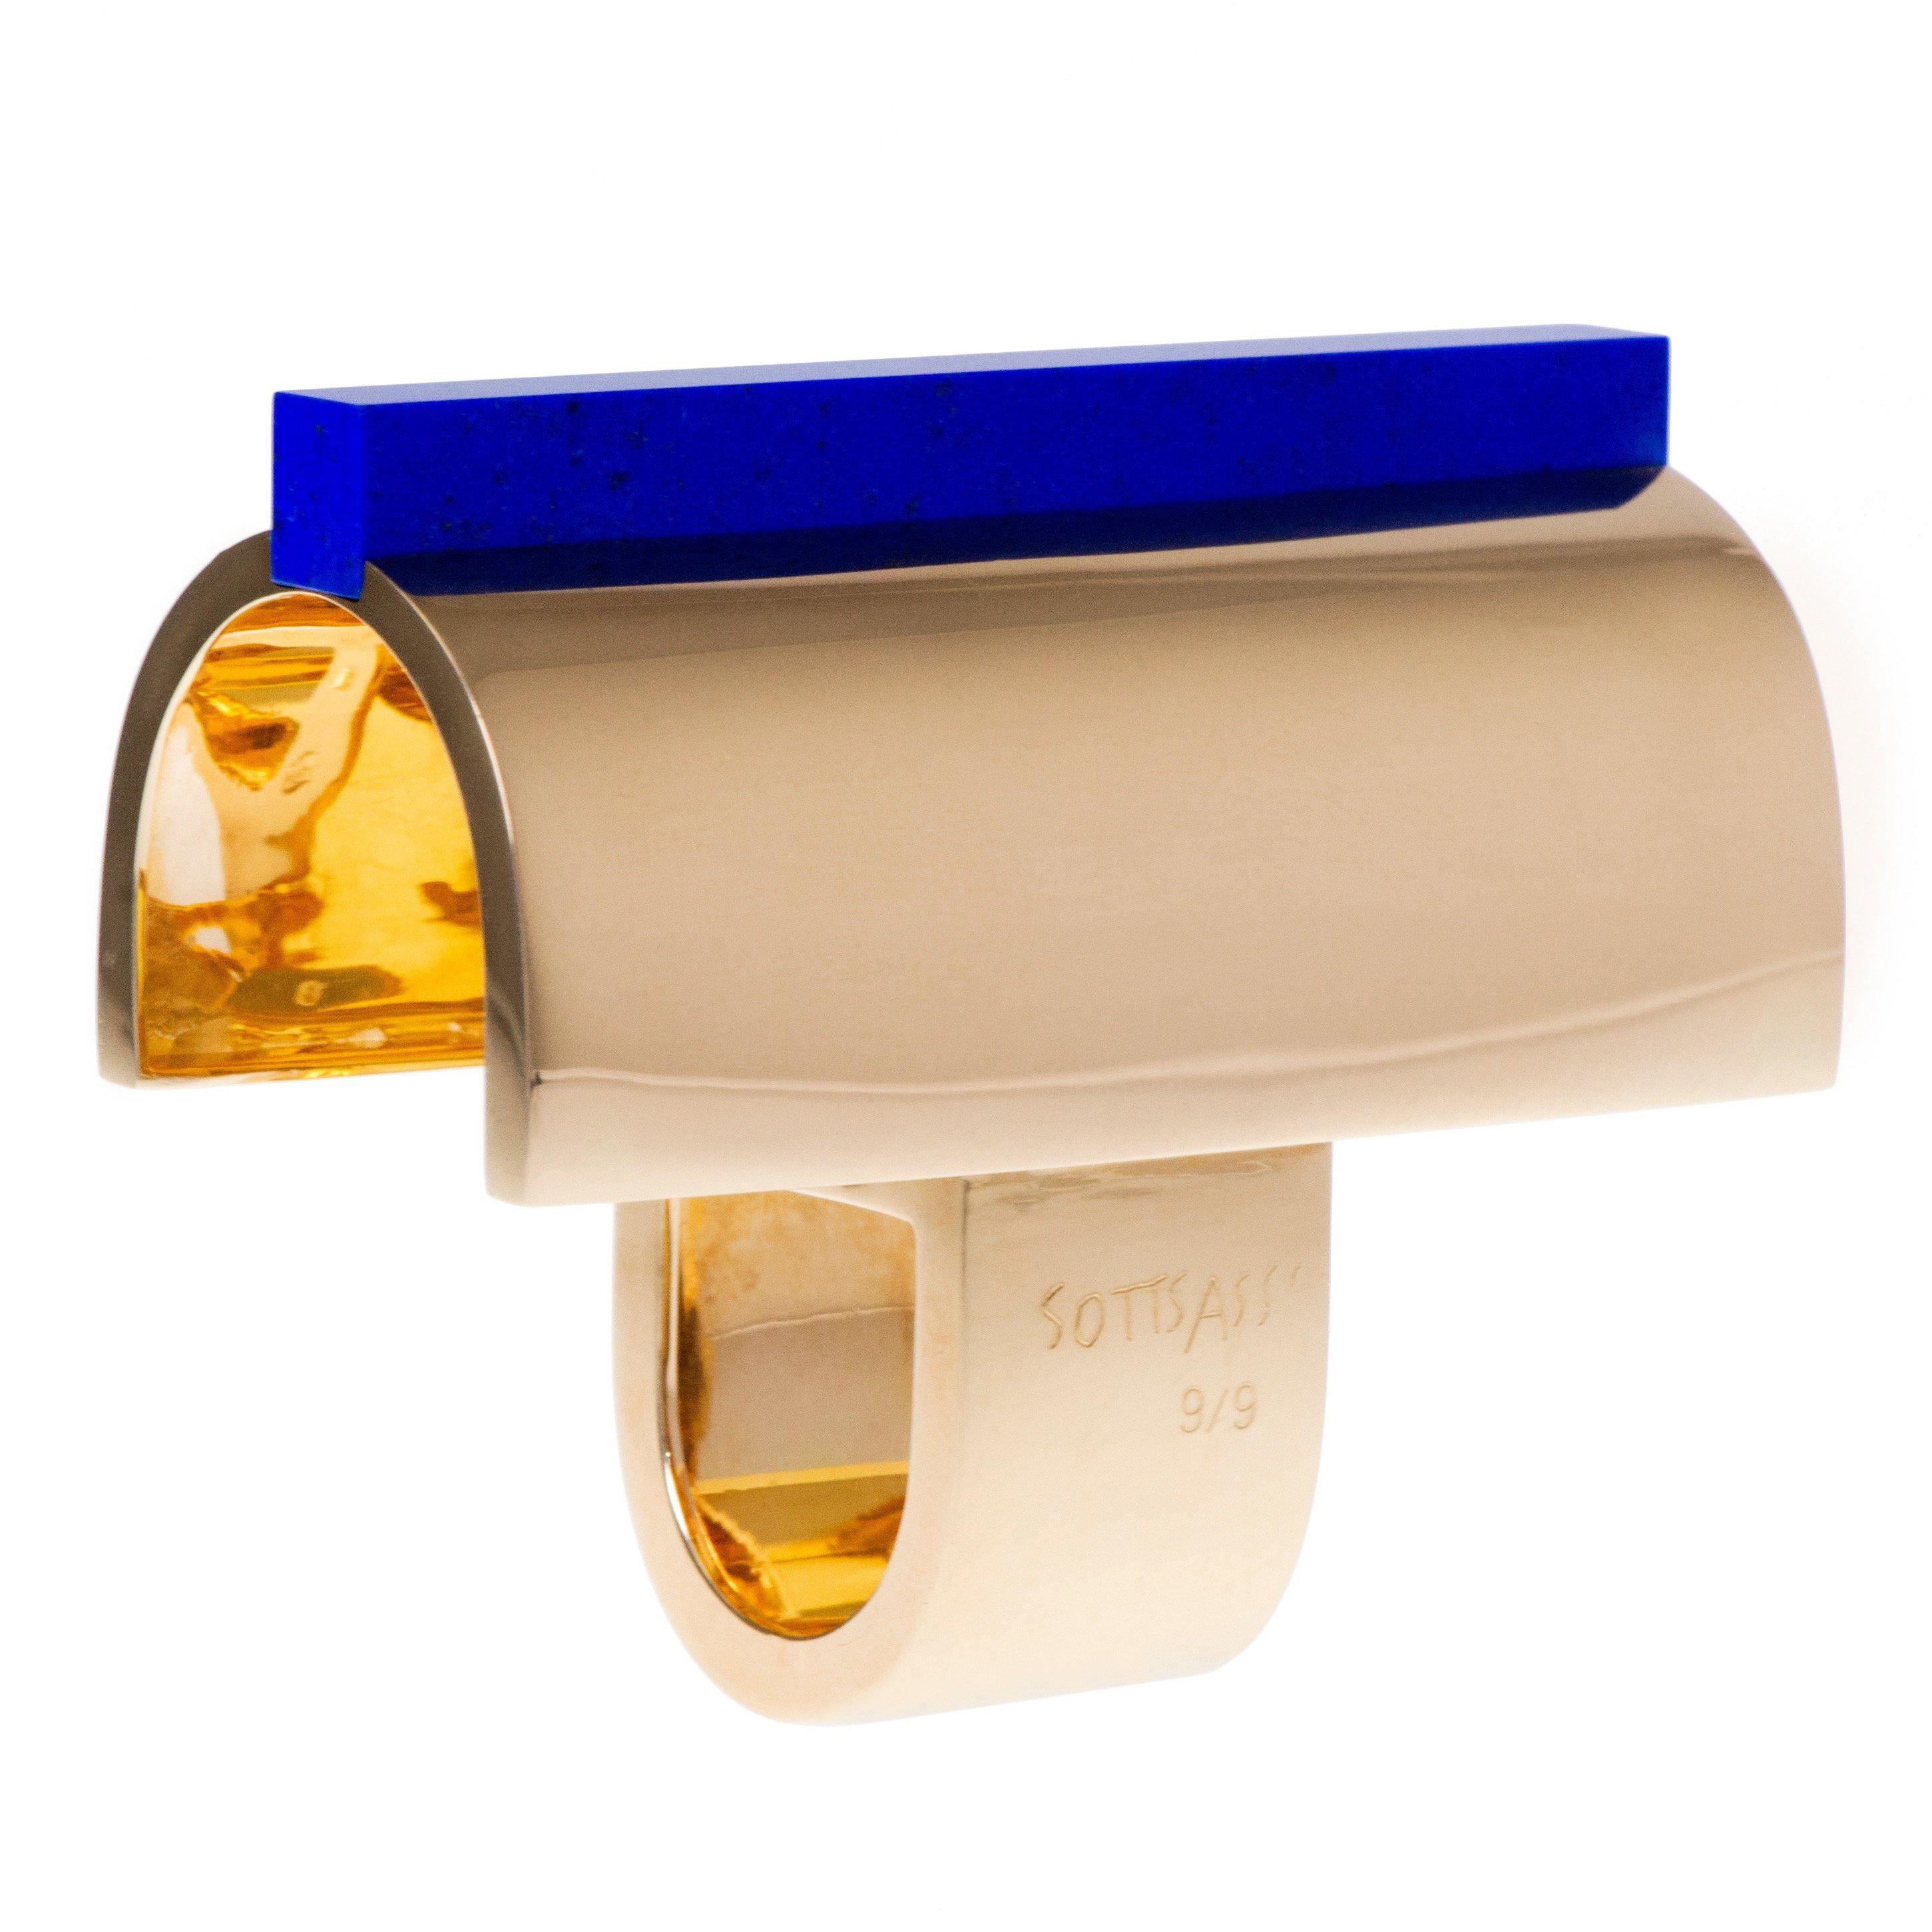 "2002 Ettore Sottsass for Cleto Munari Lapis and Gold ""Ring Mane"""